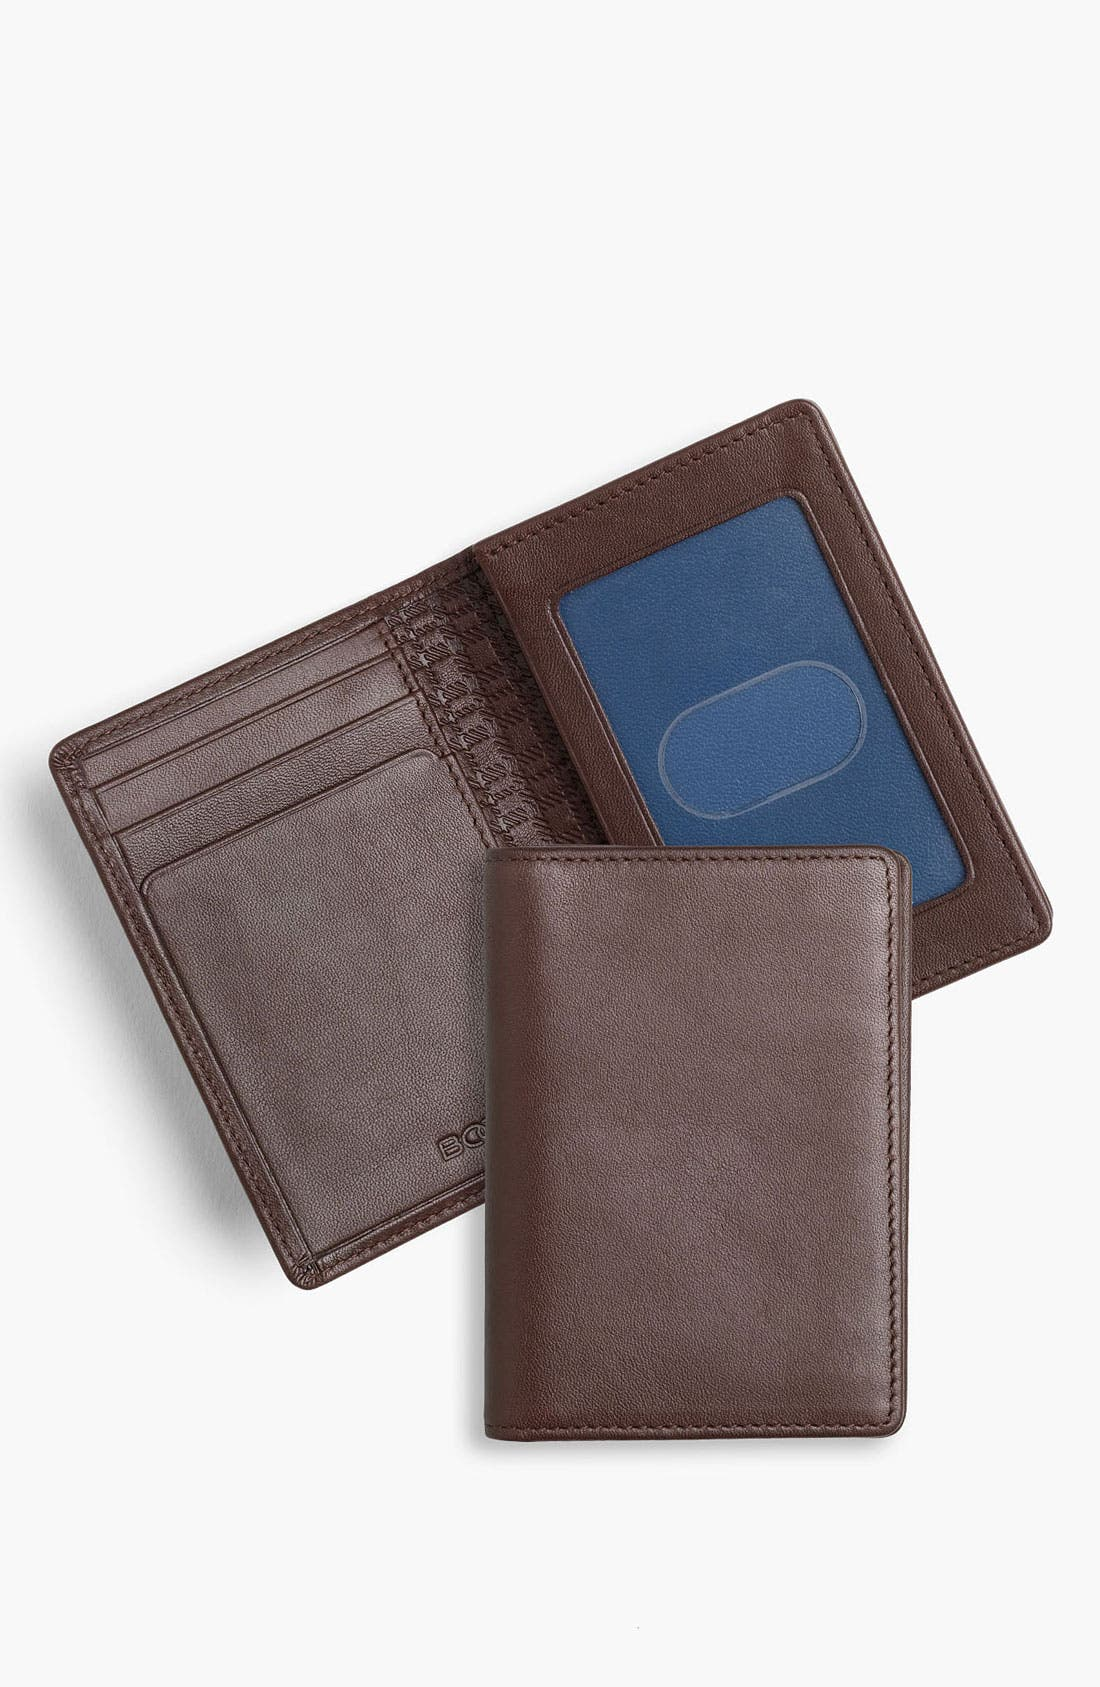 Alternate Image 1 Selected - Boconi 'Deluxe' Calfskin Card Case